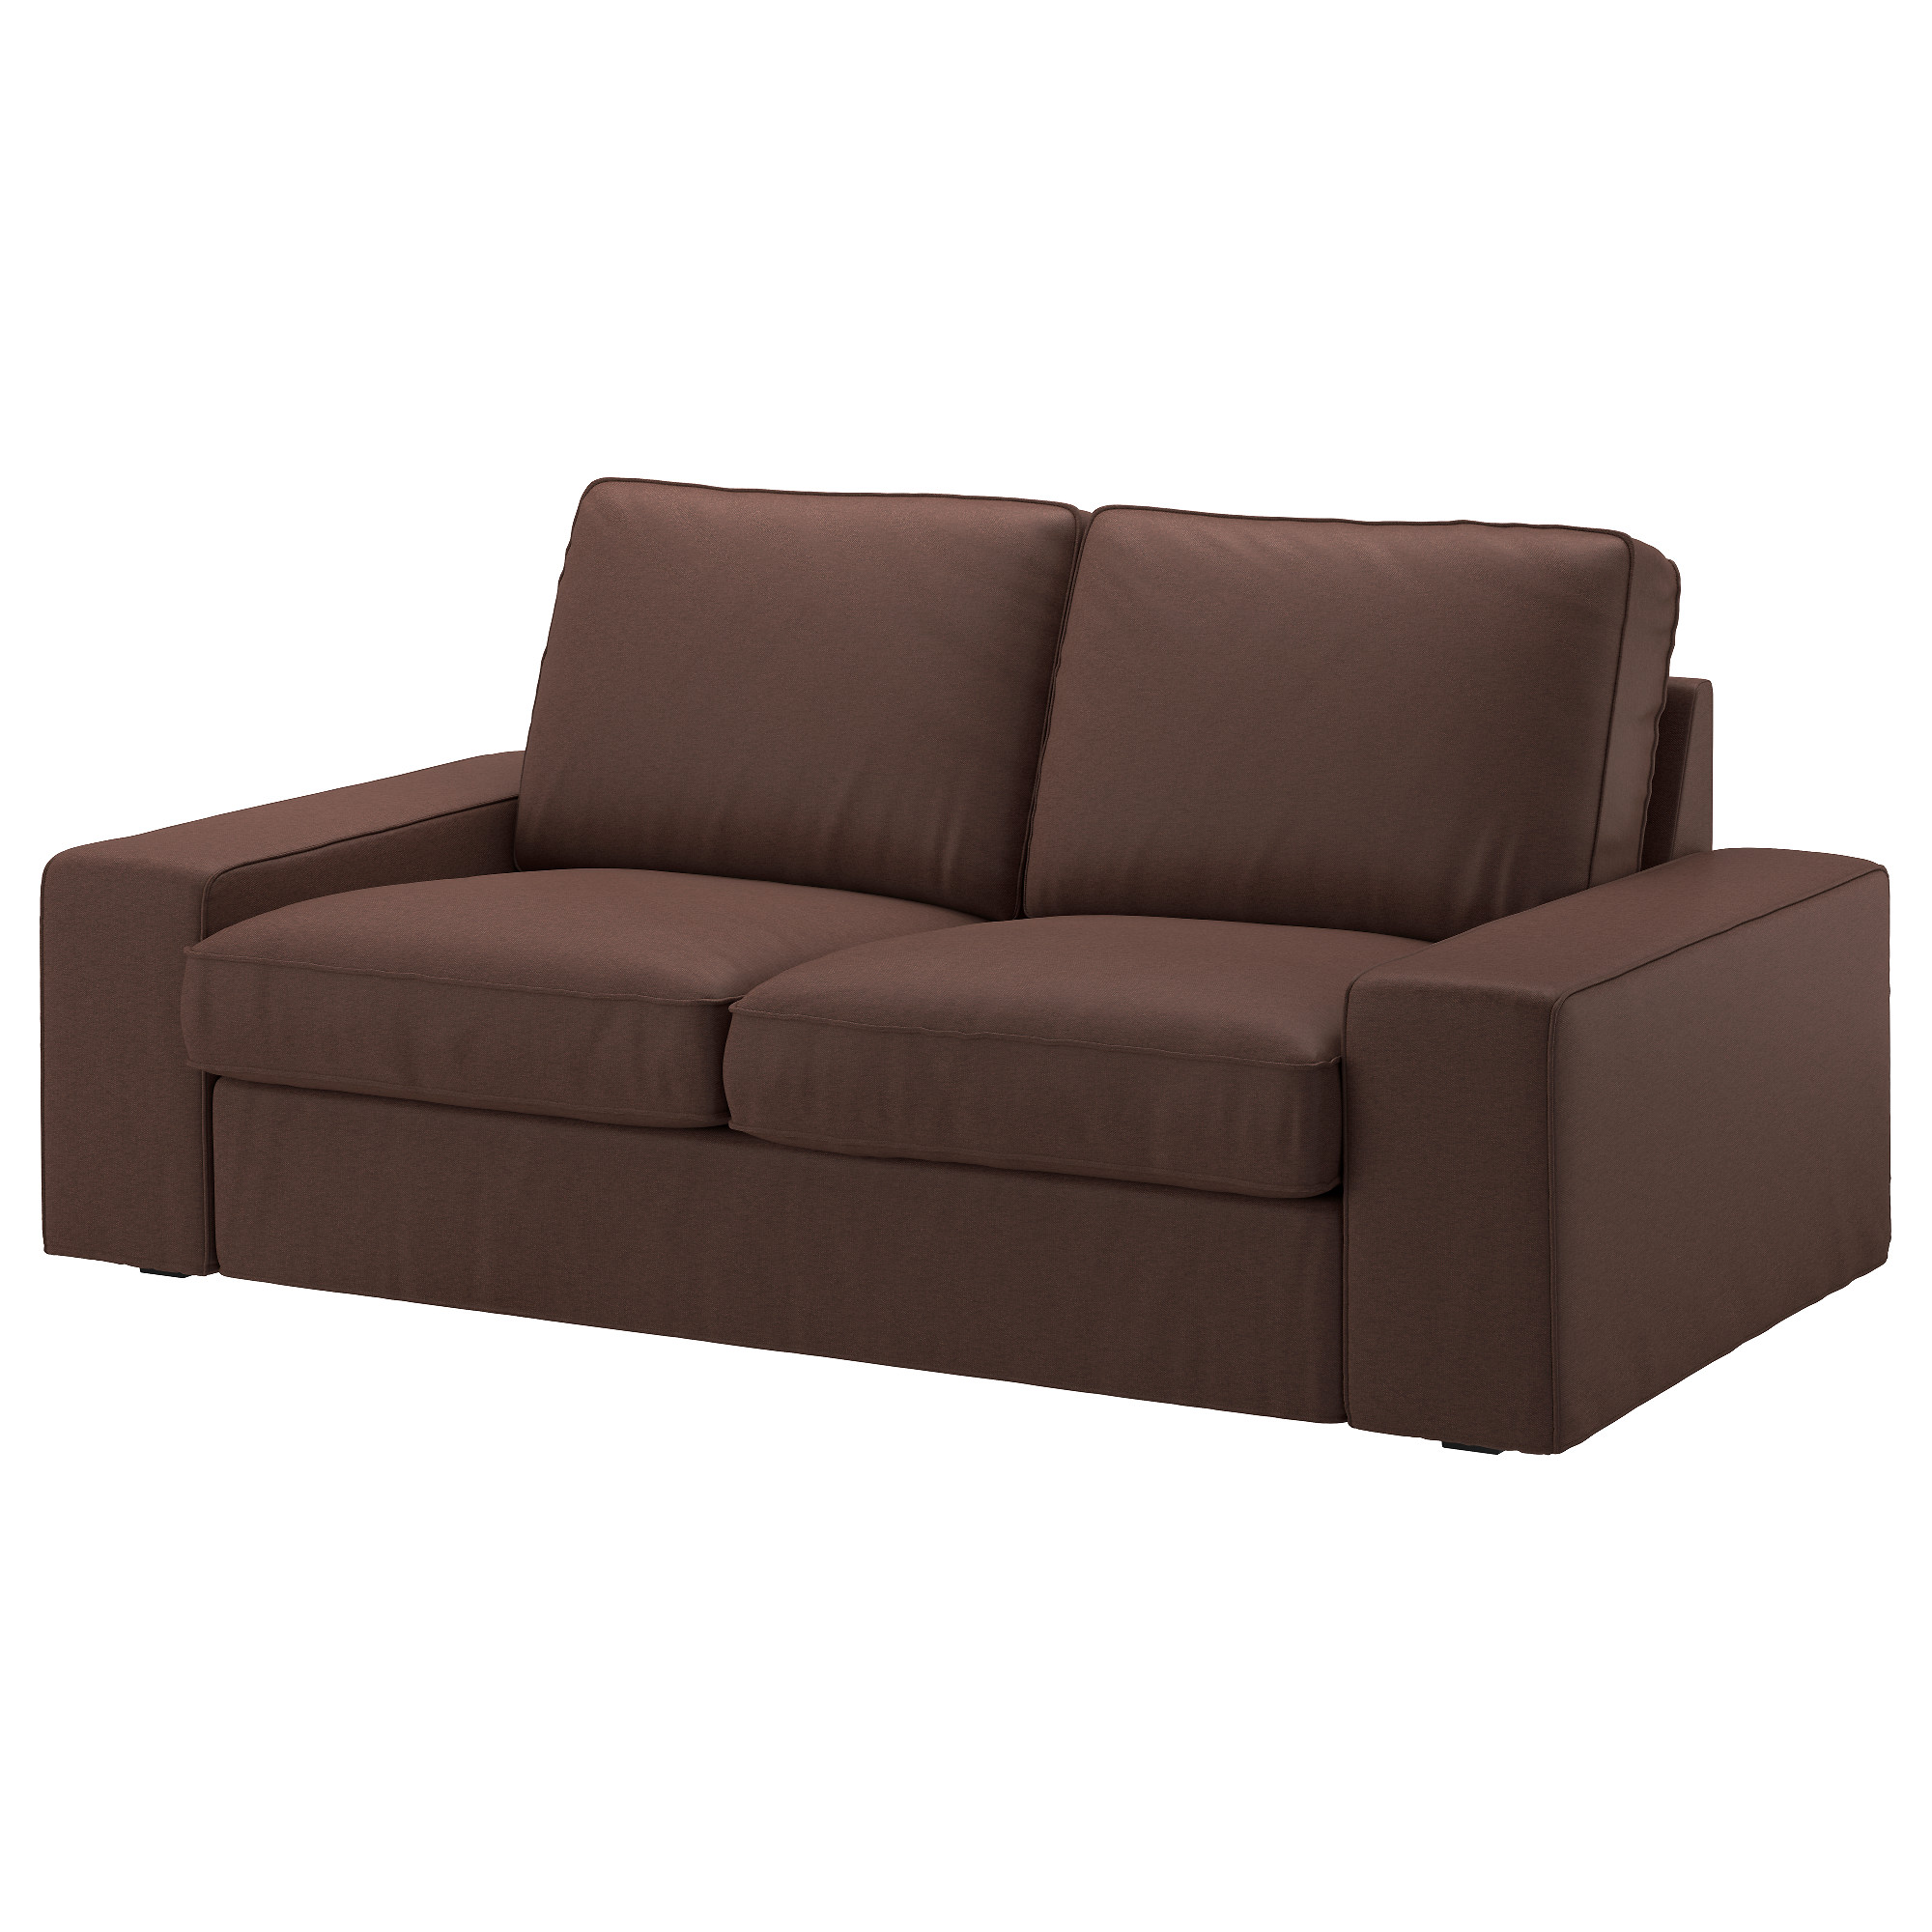 KIVIK Loveseat Hillared anthracite IKEA